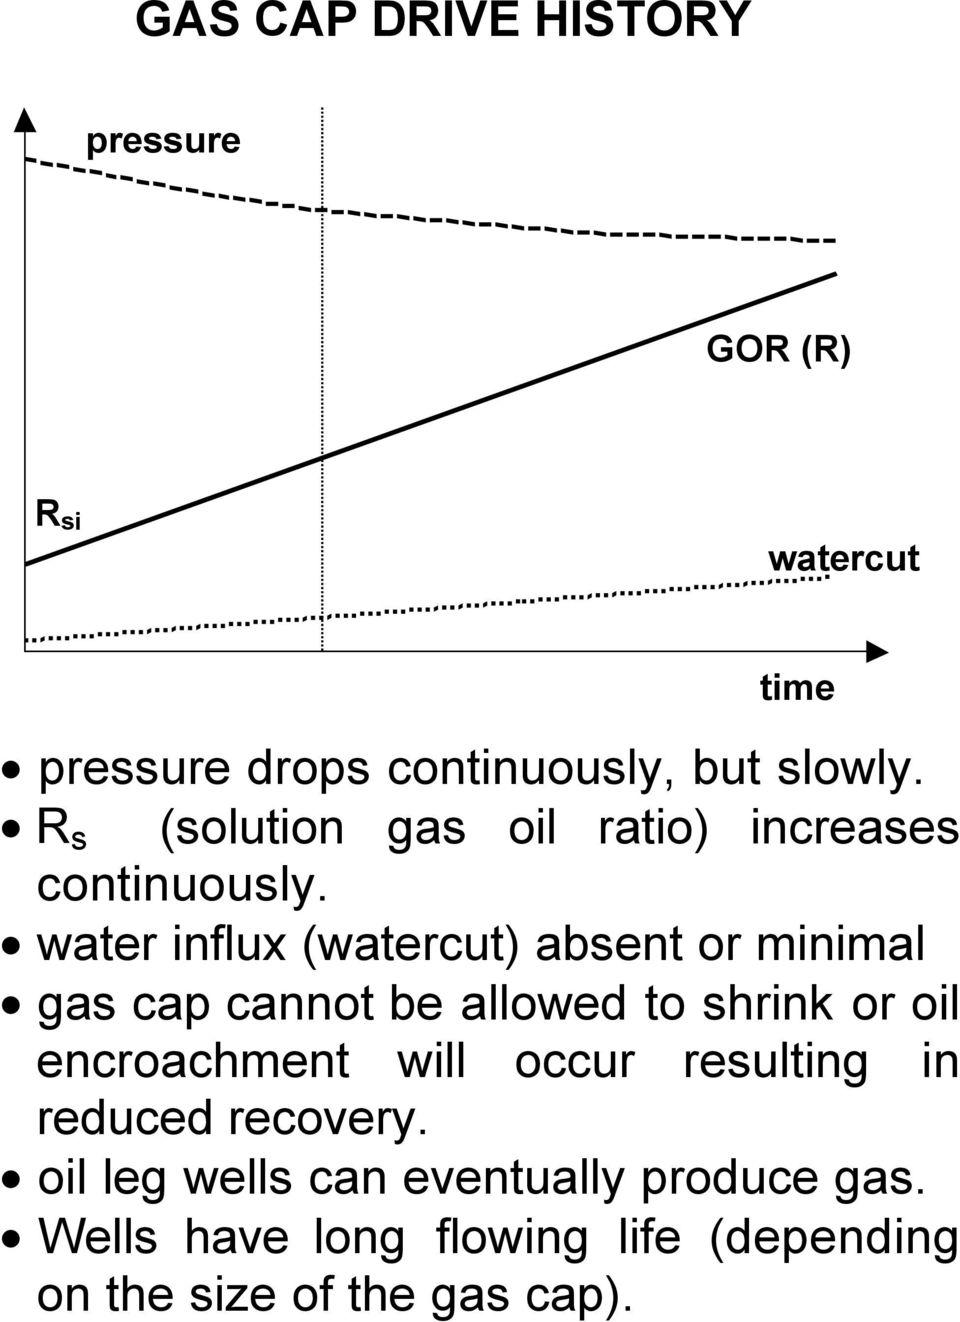 water influx (watercut) absent or minimal gas cap cannot be allowed to shrink or oil encroachment